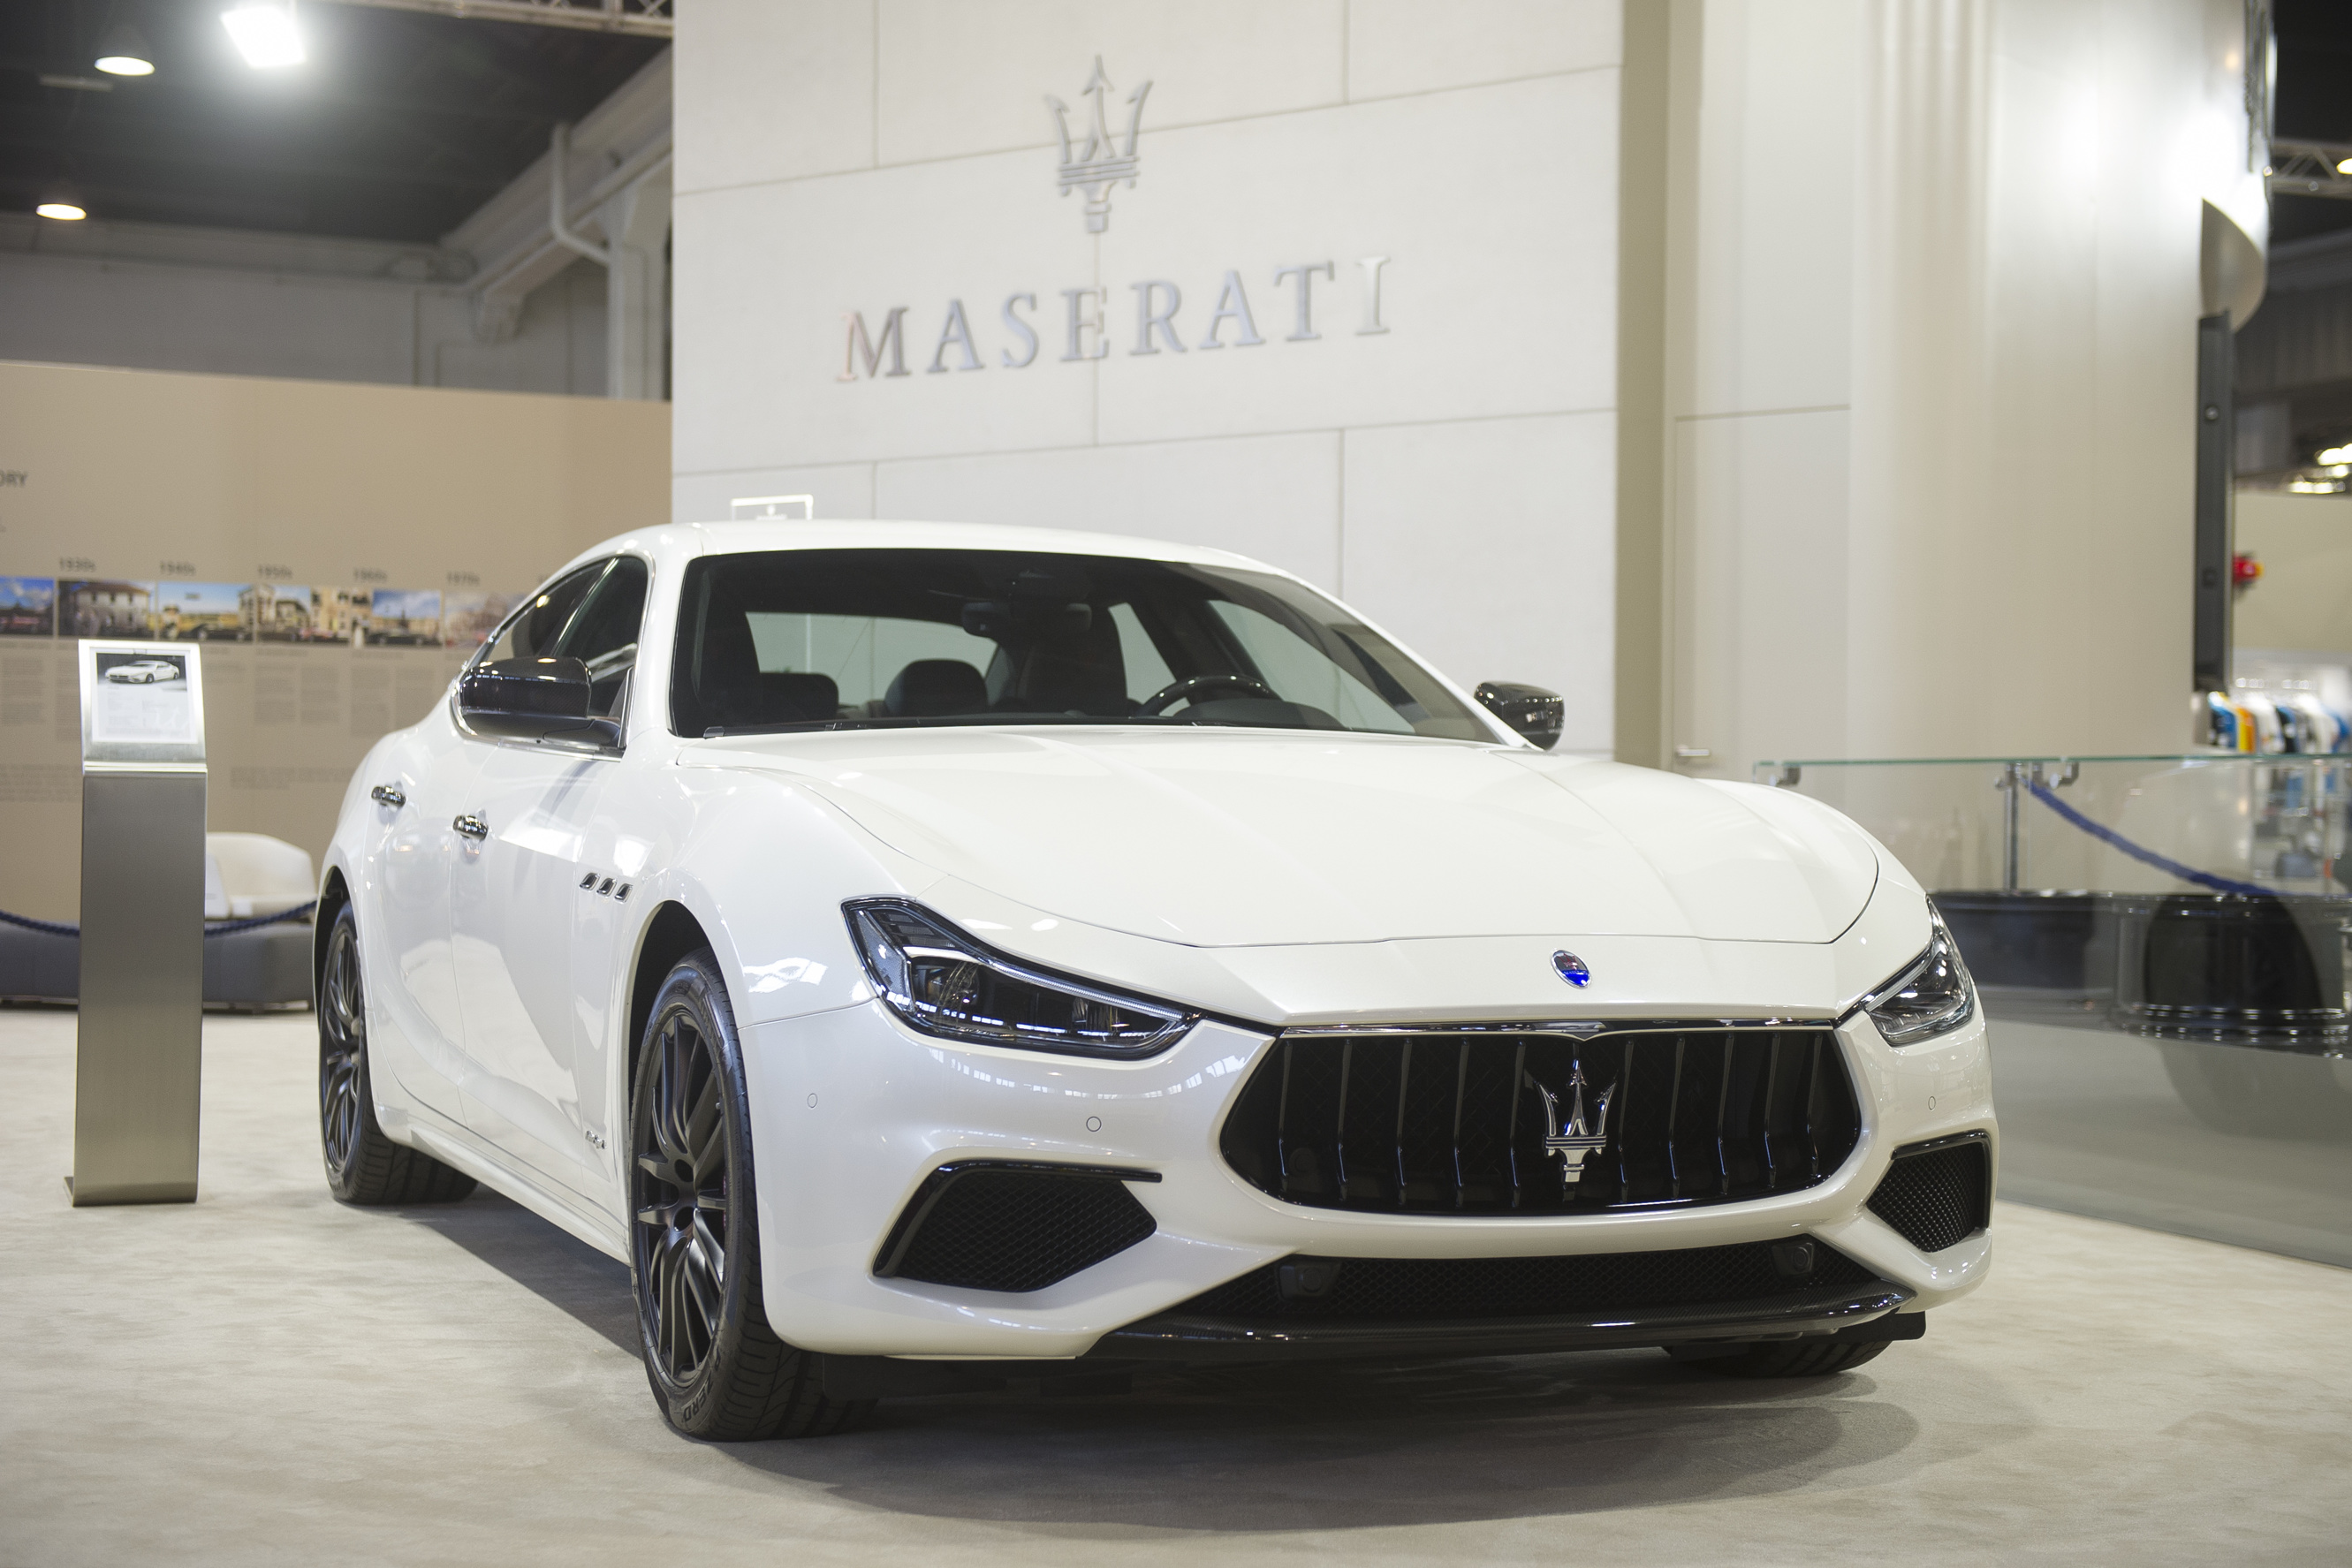 Photo Credits: Courtesy of Press Office Maserati